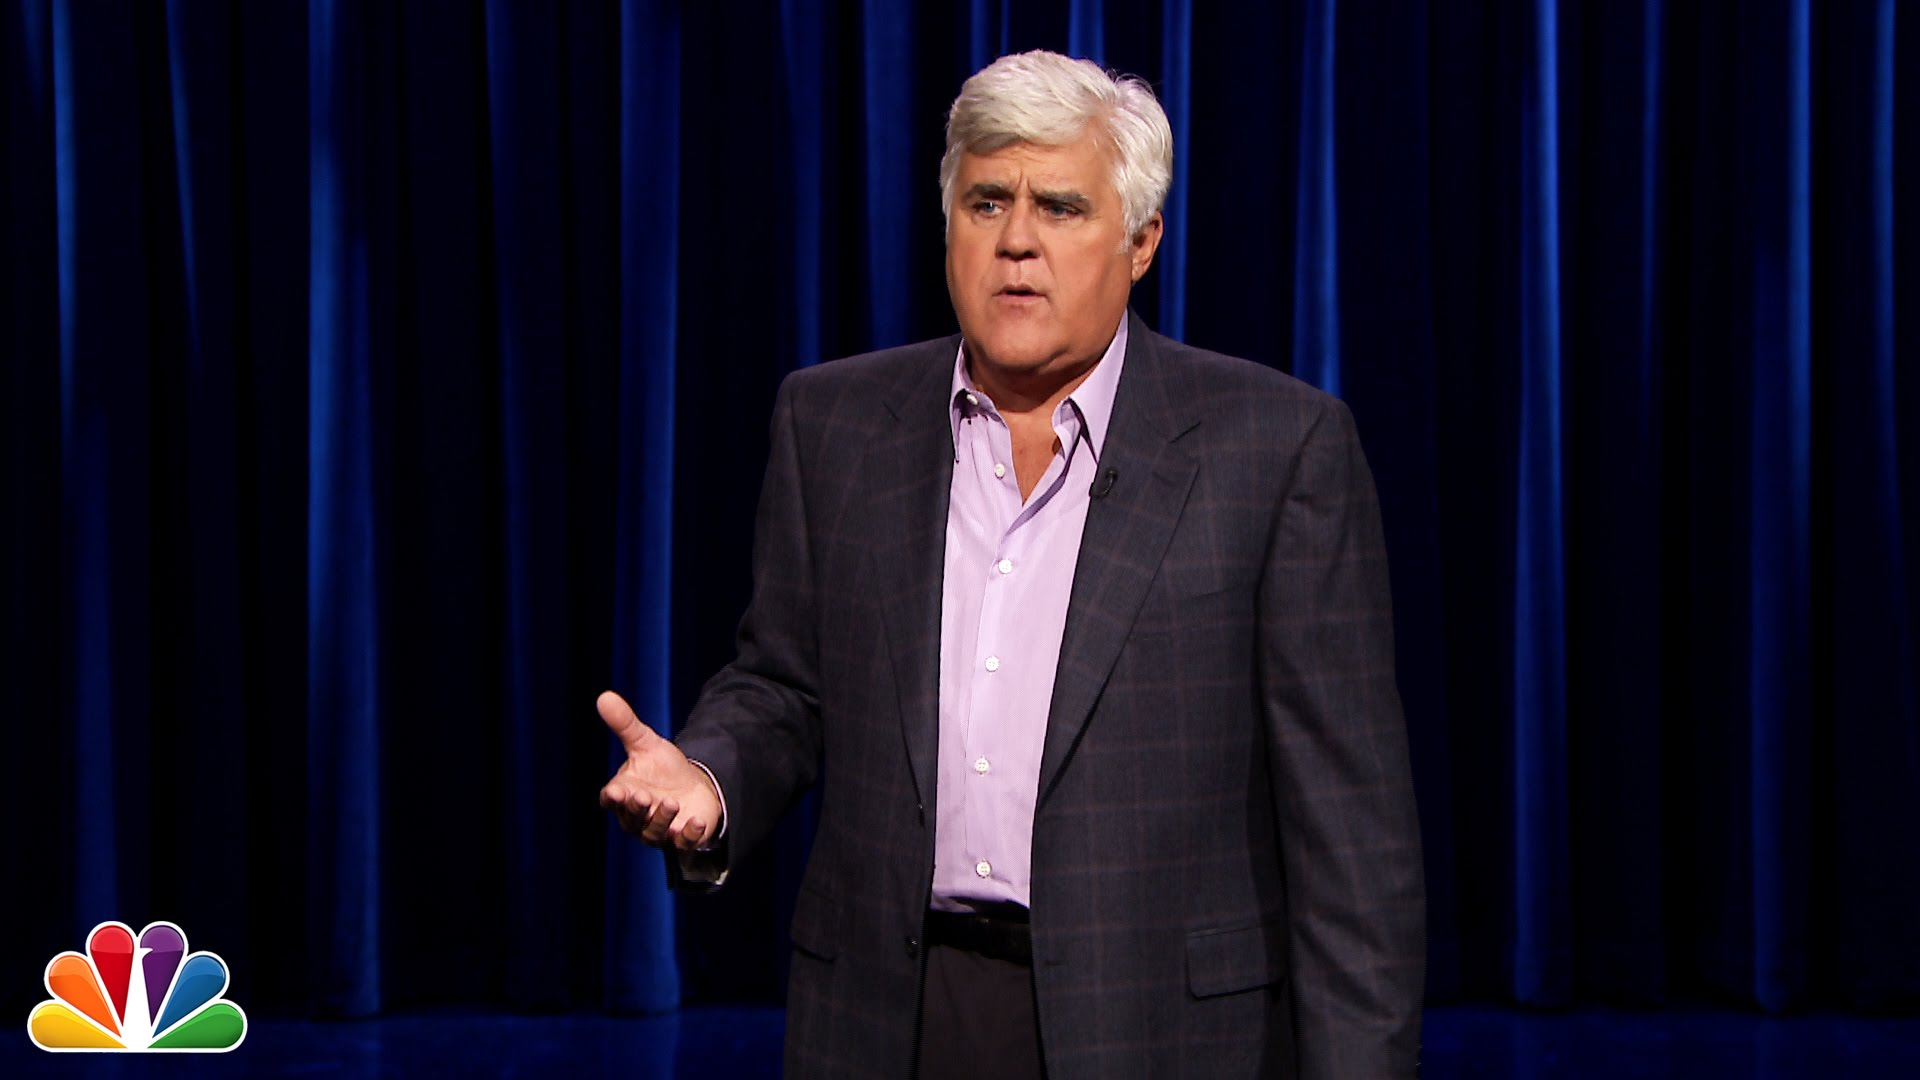 Jay Leno to perform at King Center For The Performing Arts in January 2019